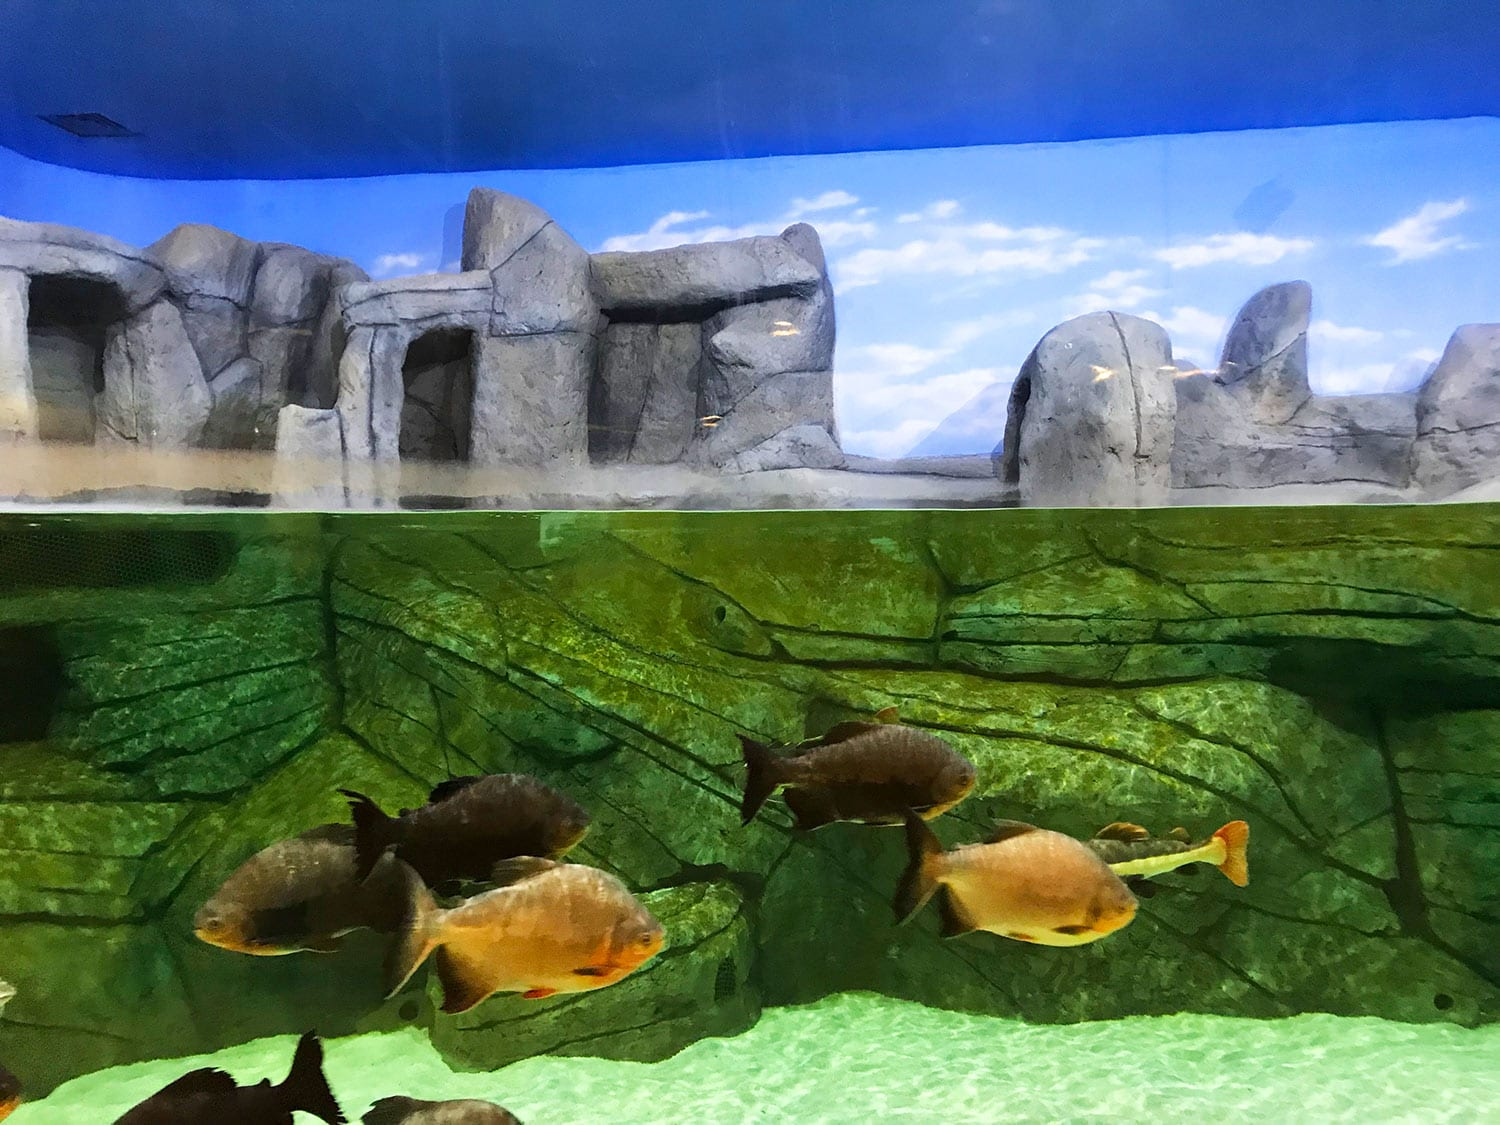 The Largest Aquarium Tunnel in Iran Opens in Bandar-e Anzali - SURFIRAN